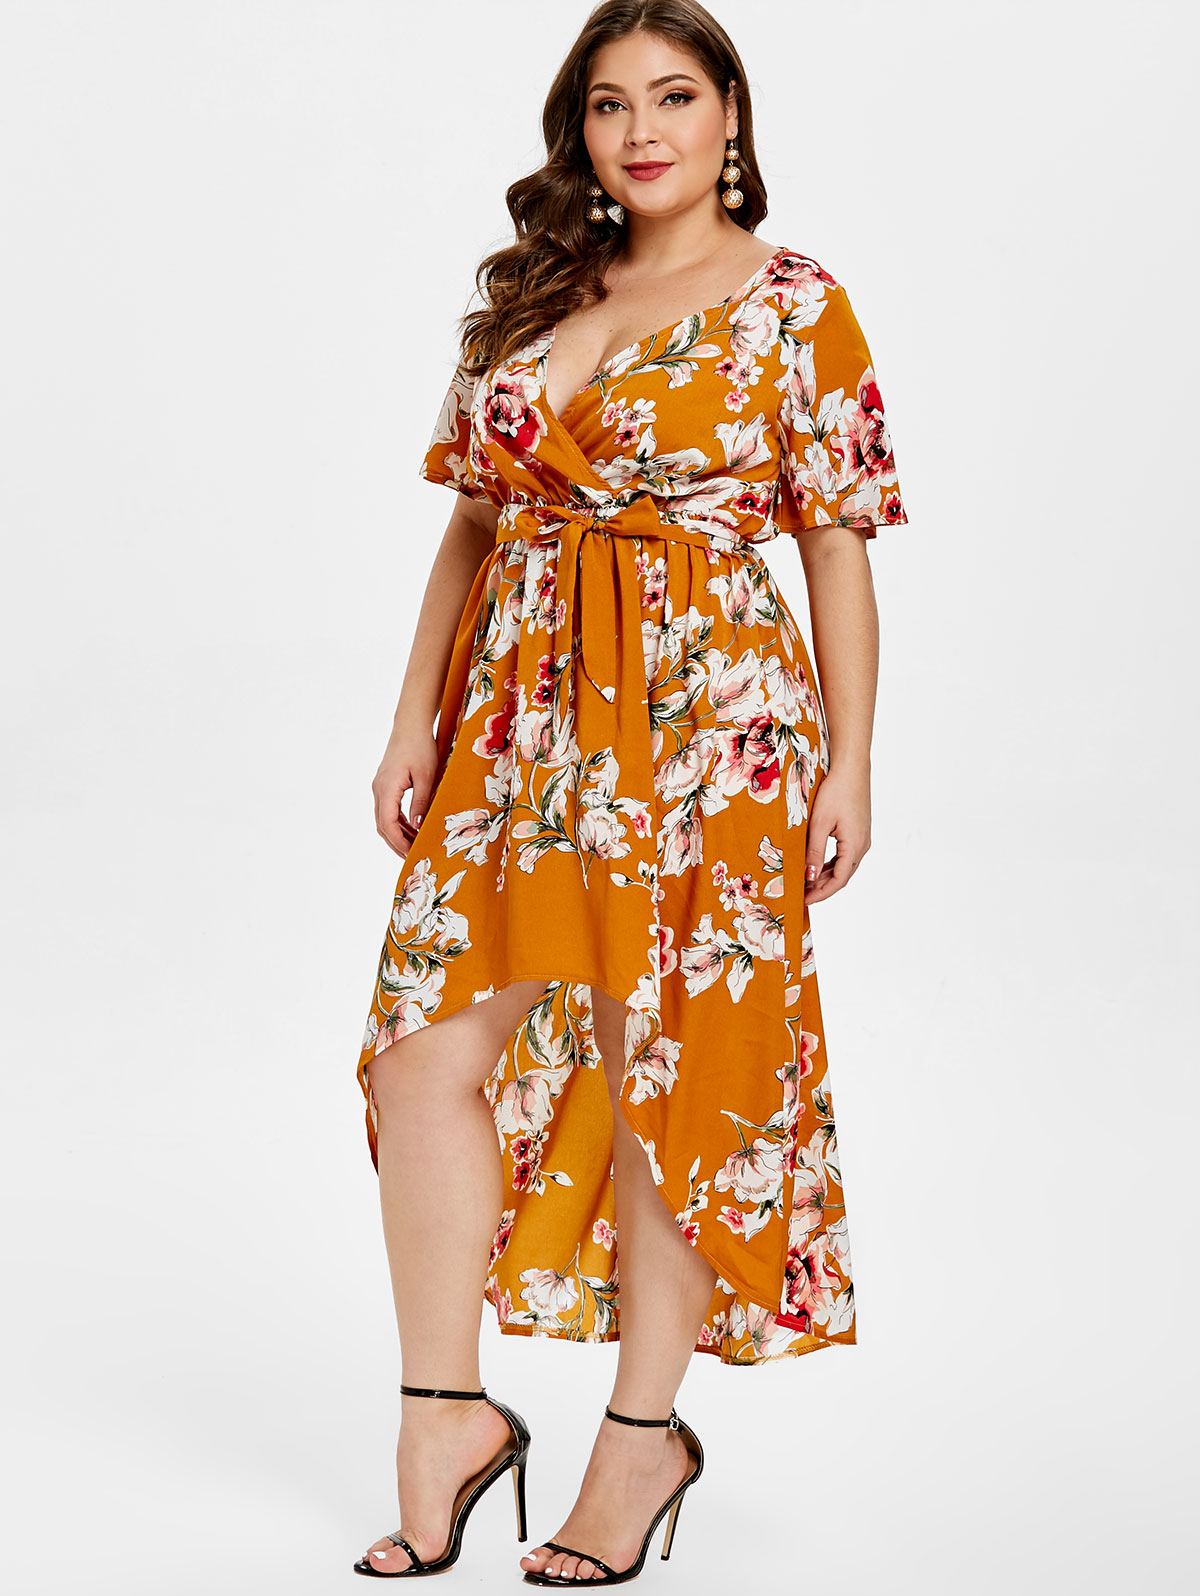 Wipalo Women Plus Size Floral Print High Low Dress Short Sleeve V Neck  Belted Bow Causal aea7f228cd5b